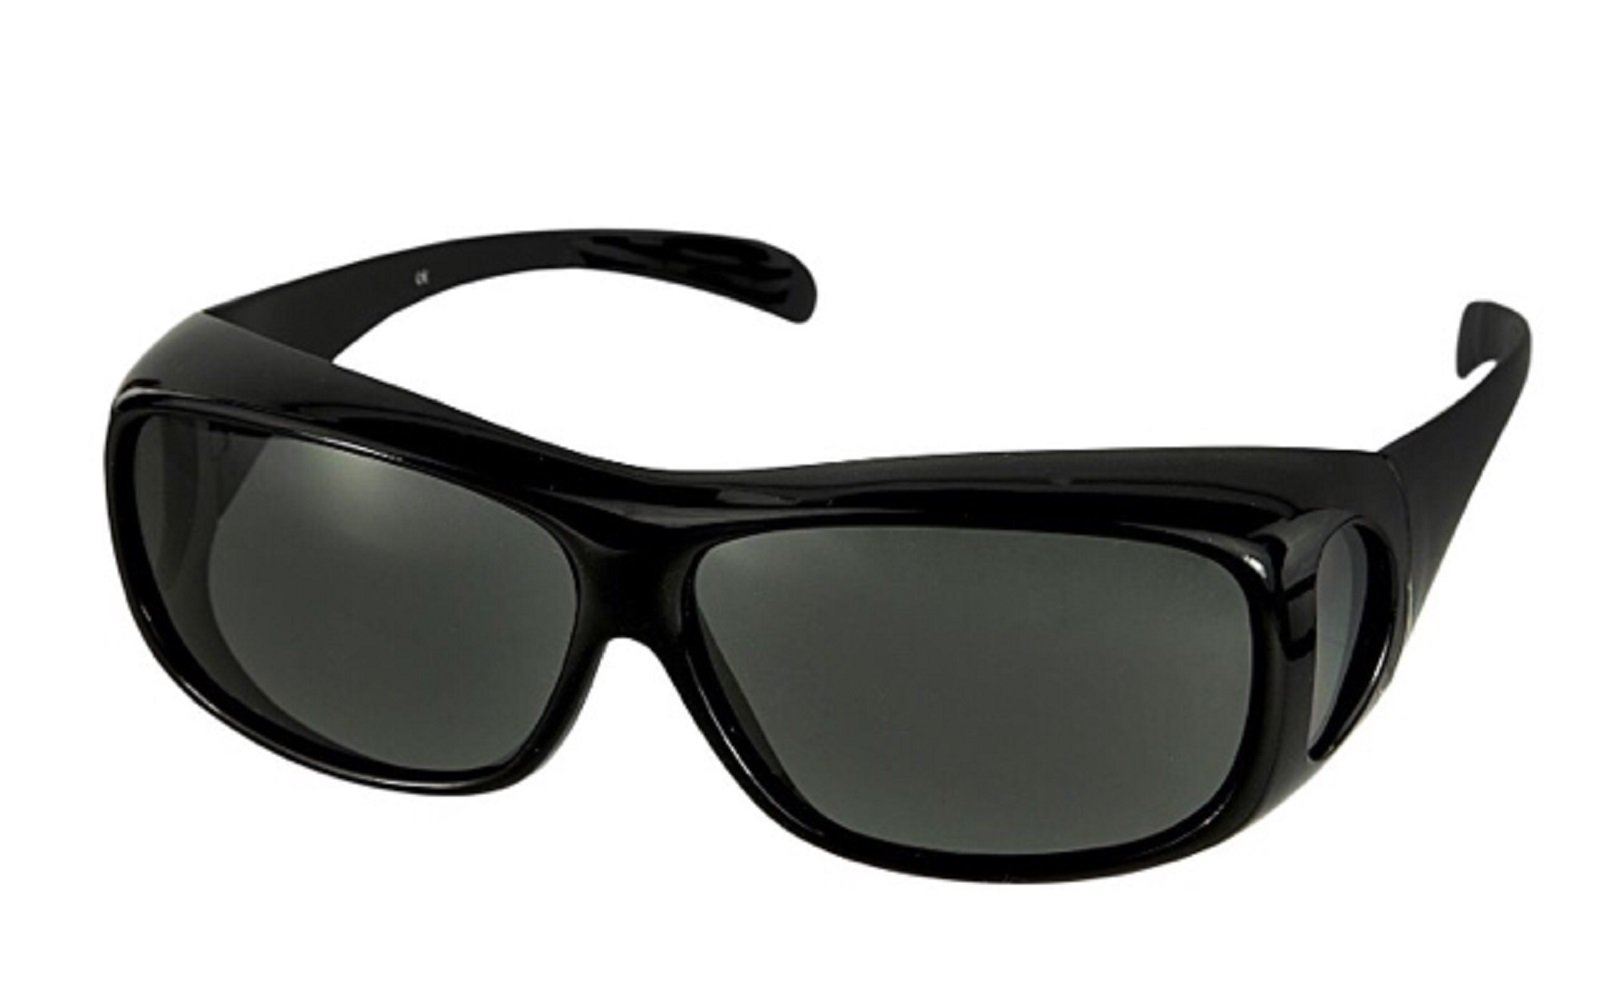 Polarized Fit Over Sunglasses 2866, Size Small, Black